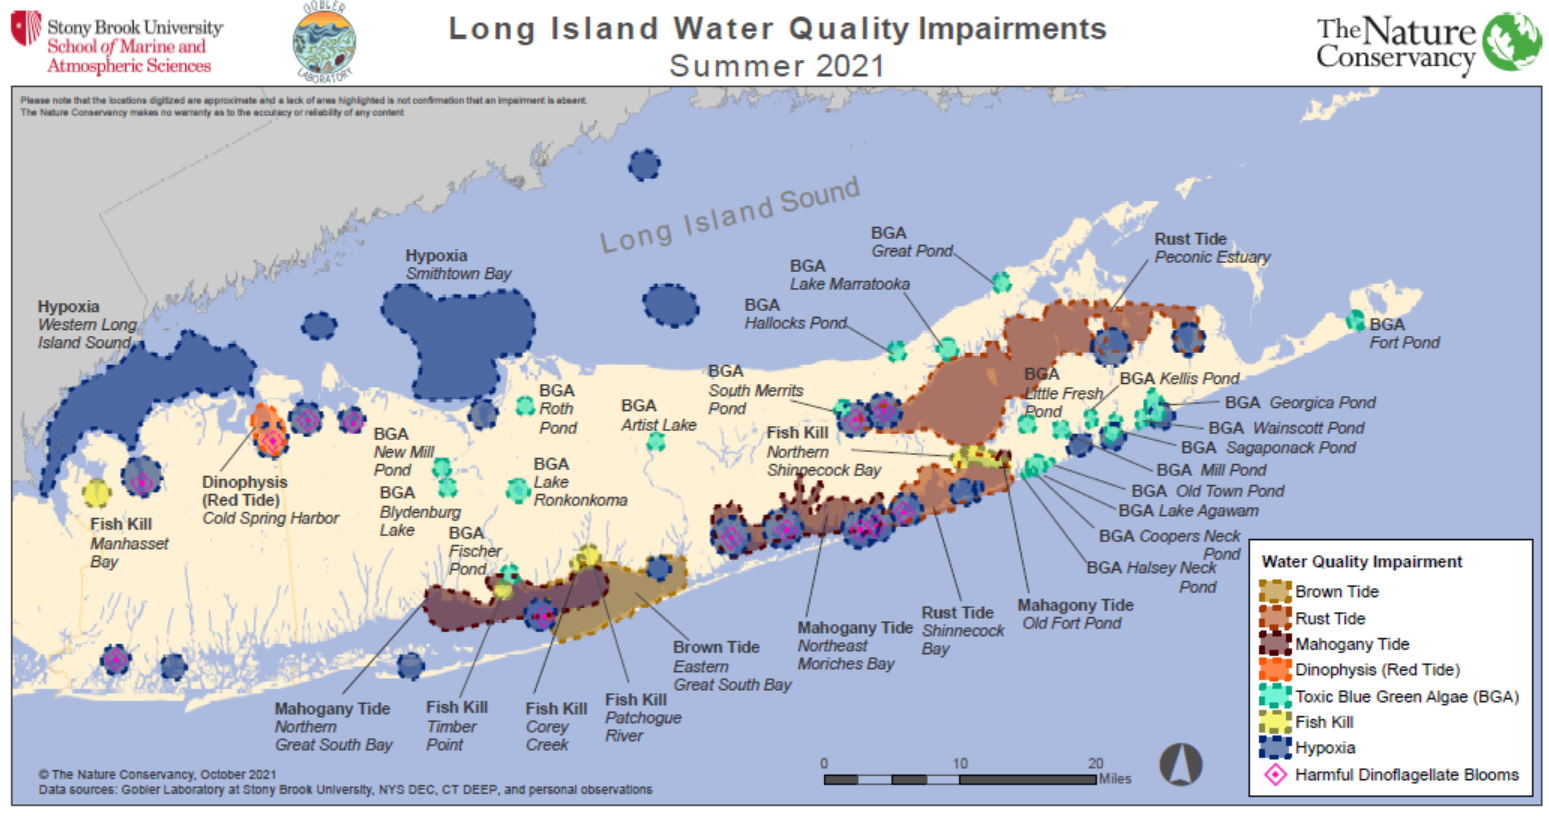 Water quality impairments across Long Island during Summer 2021